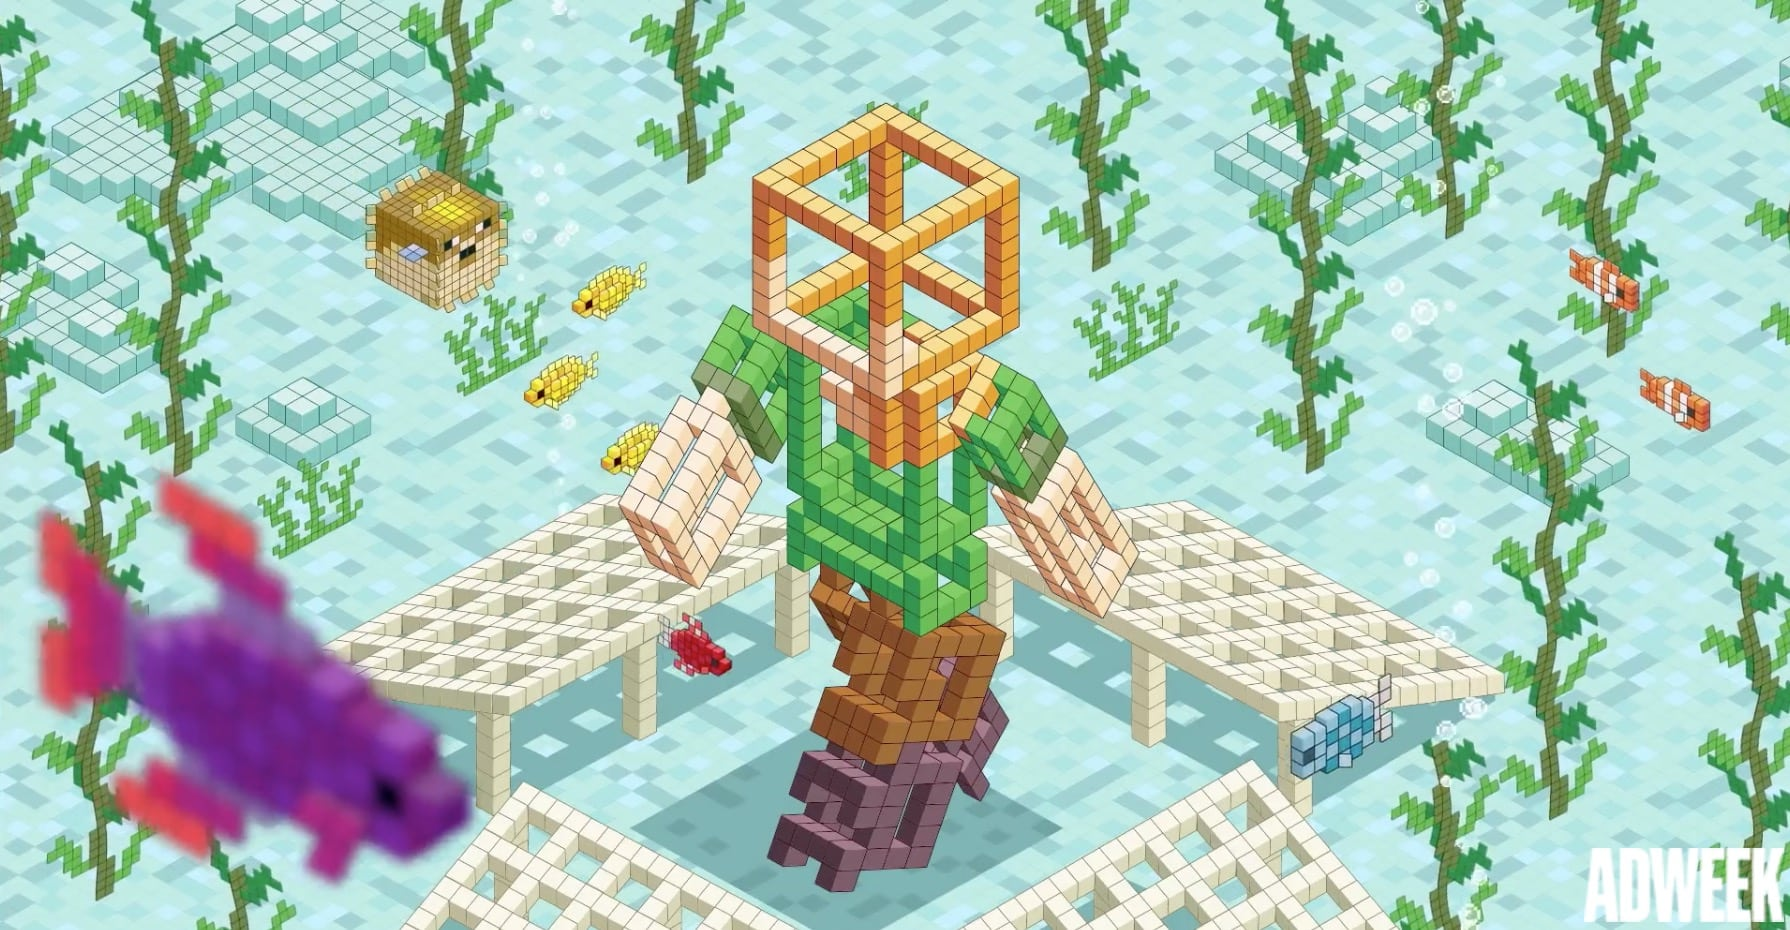 Image [Minecraft Coral Crafters project screen capture][Adweek]